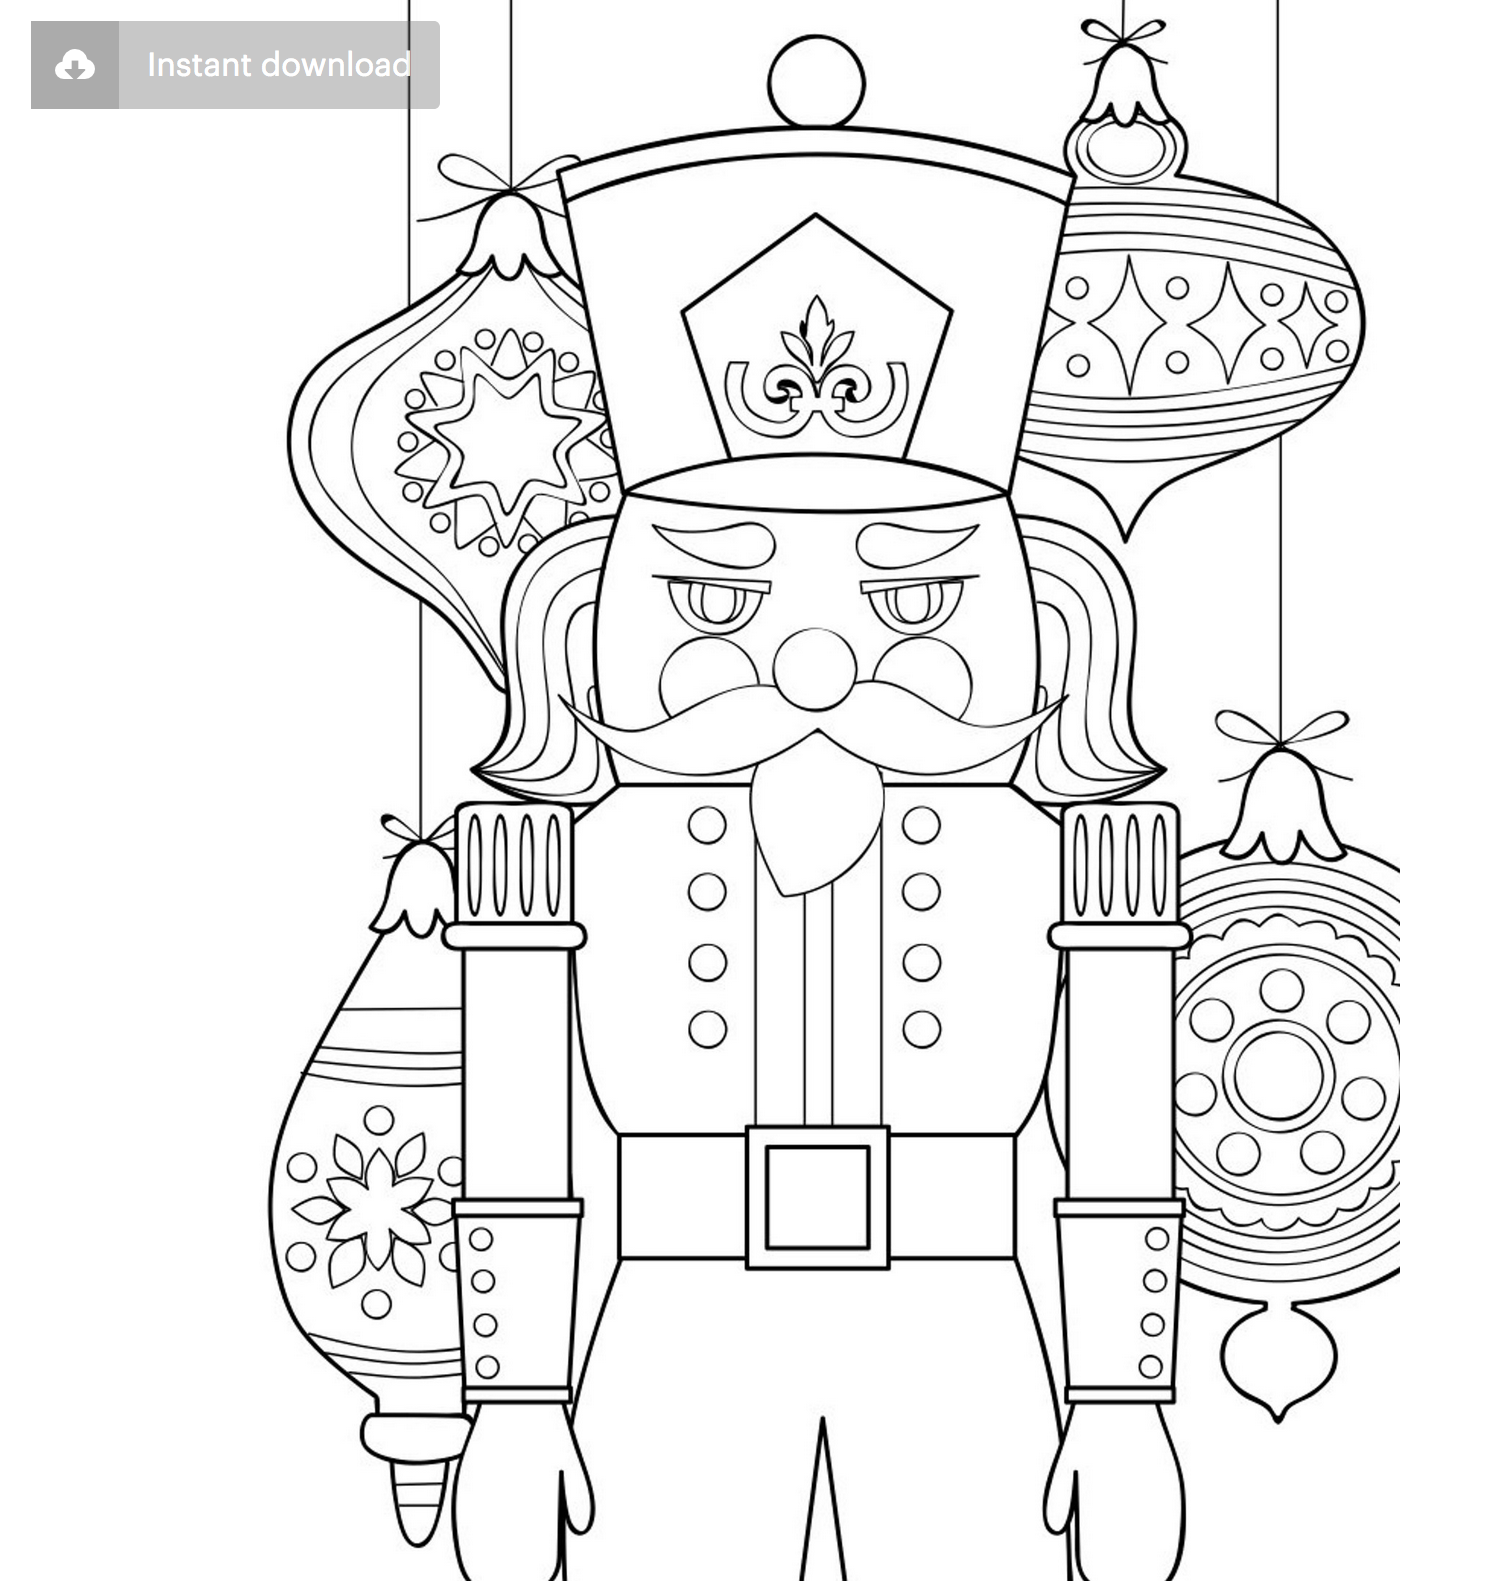 Pin by Kristen Hains on Coloring Book Pages   Printable ...